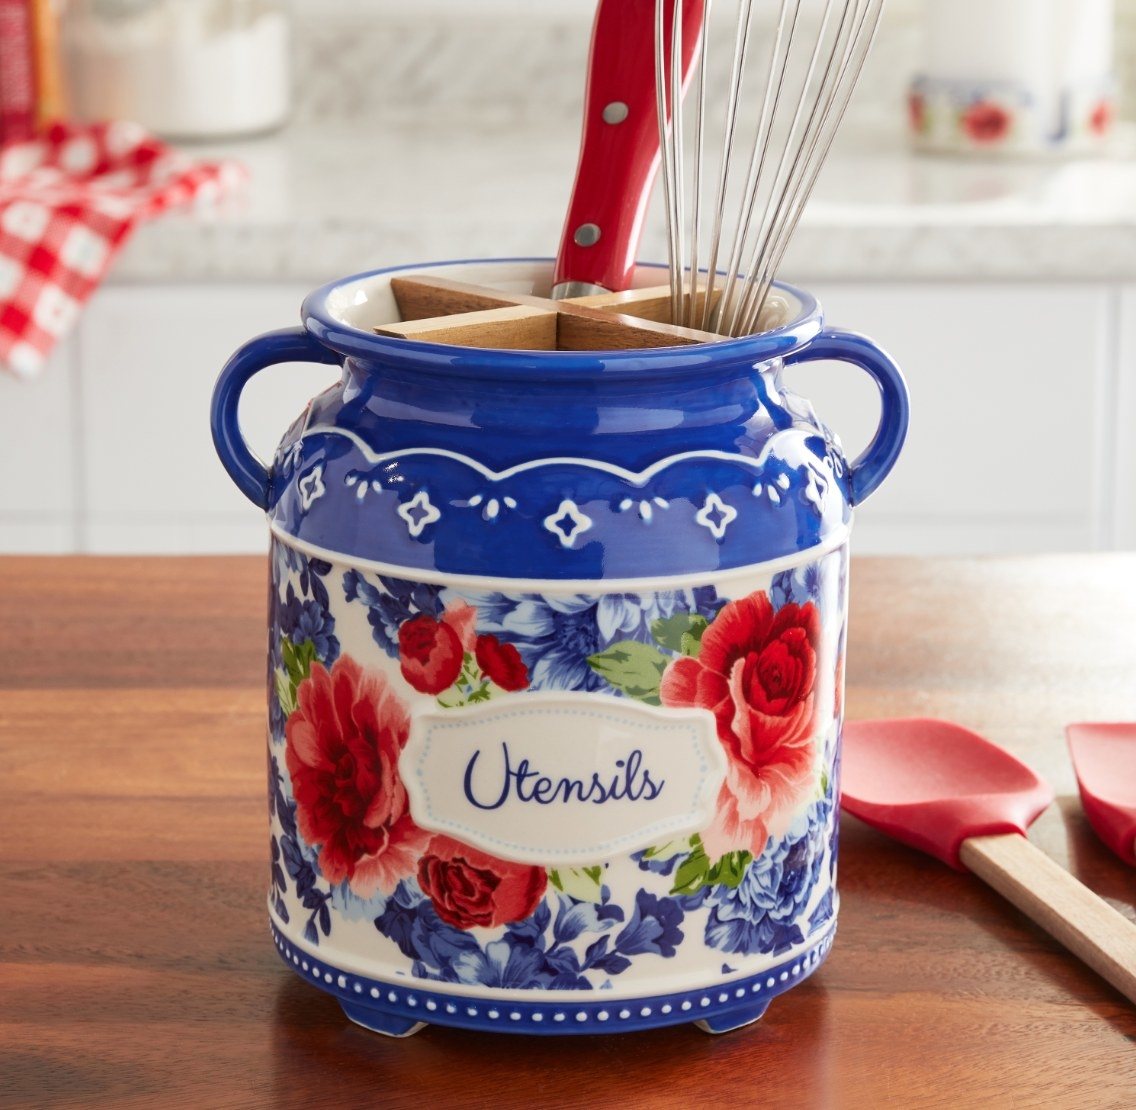 The utensil holder in blue